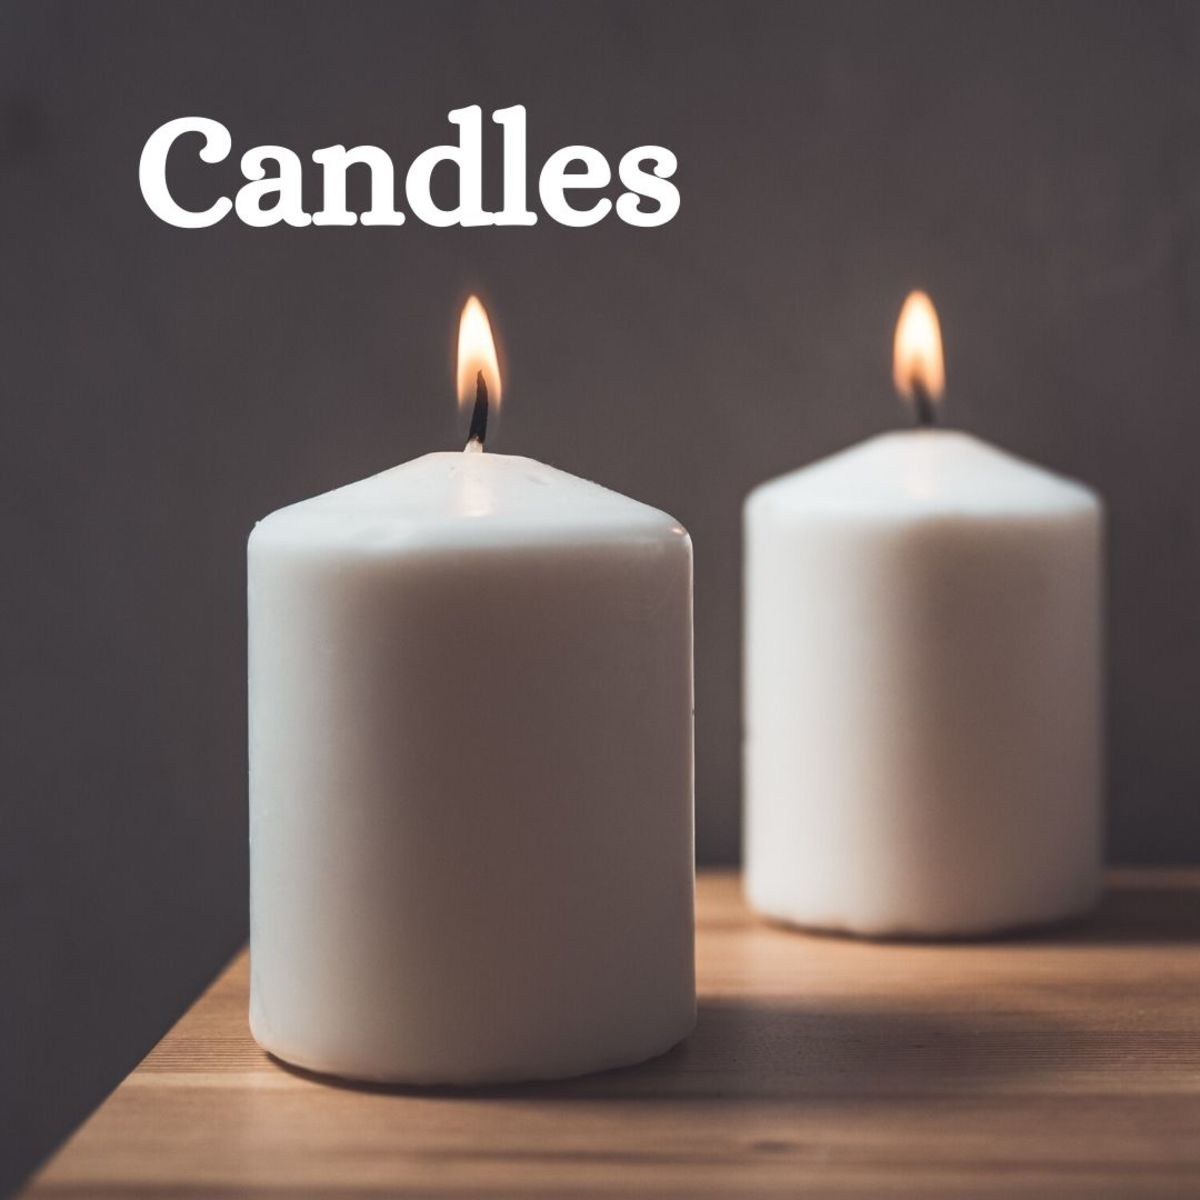 There are many different types of candles—they're perfect for collecting!